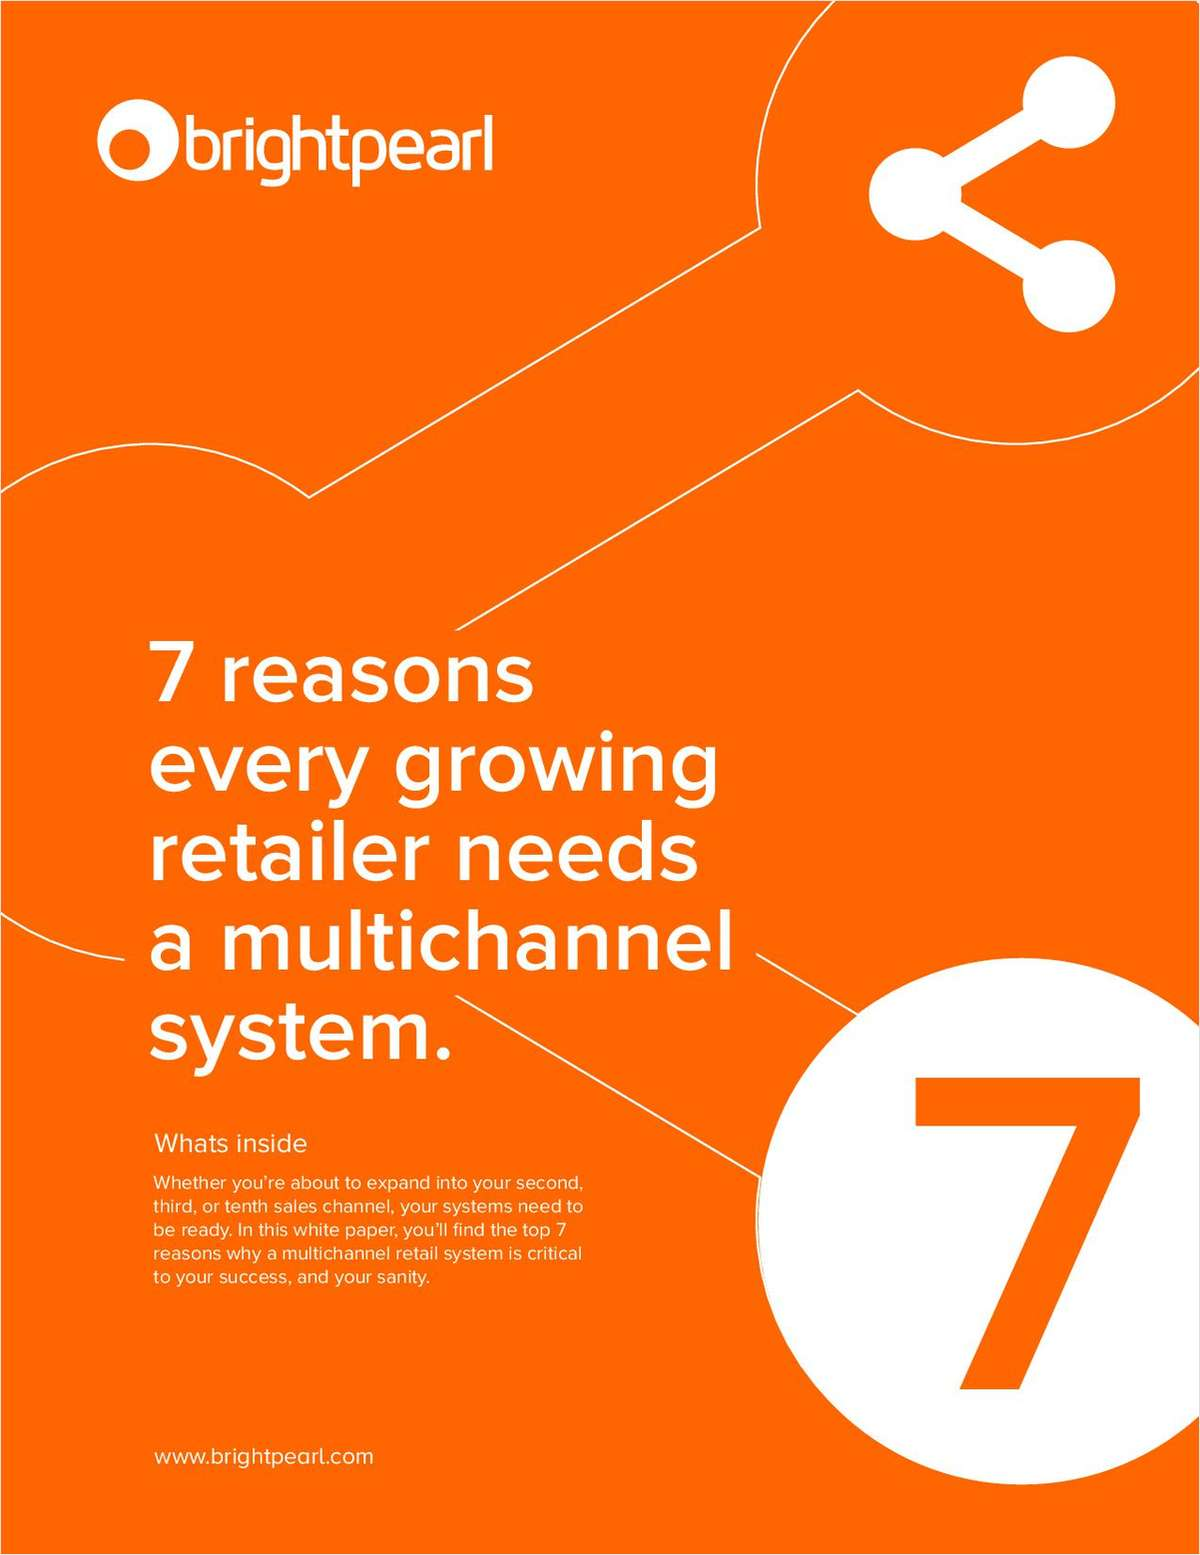 7 reasons every growing retailer needs a multichannel system